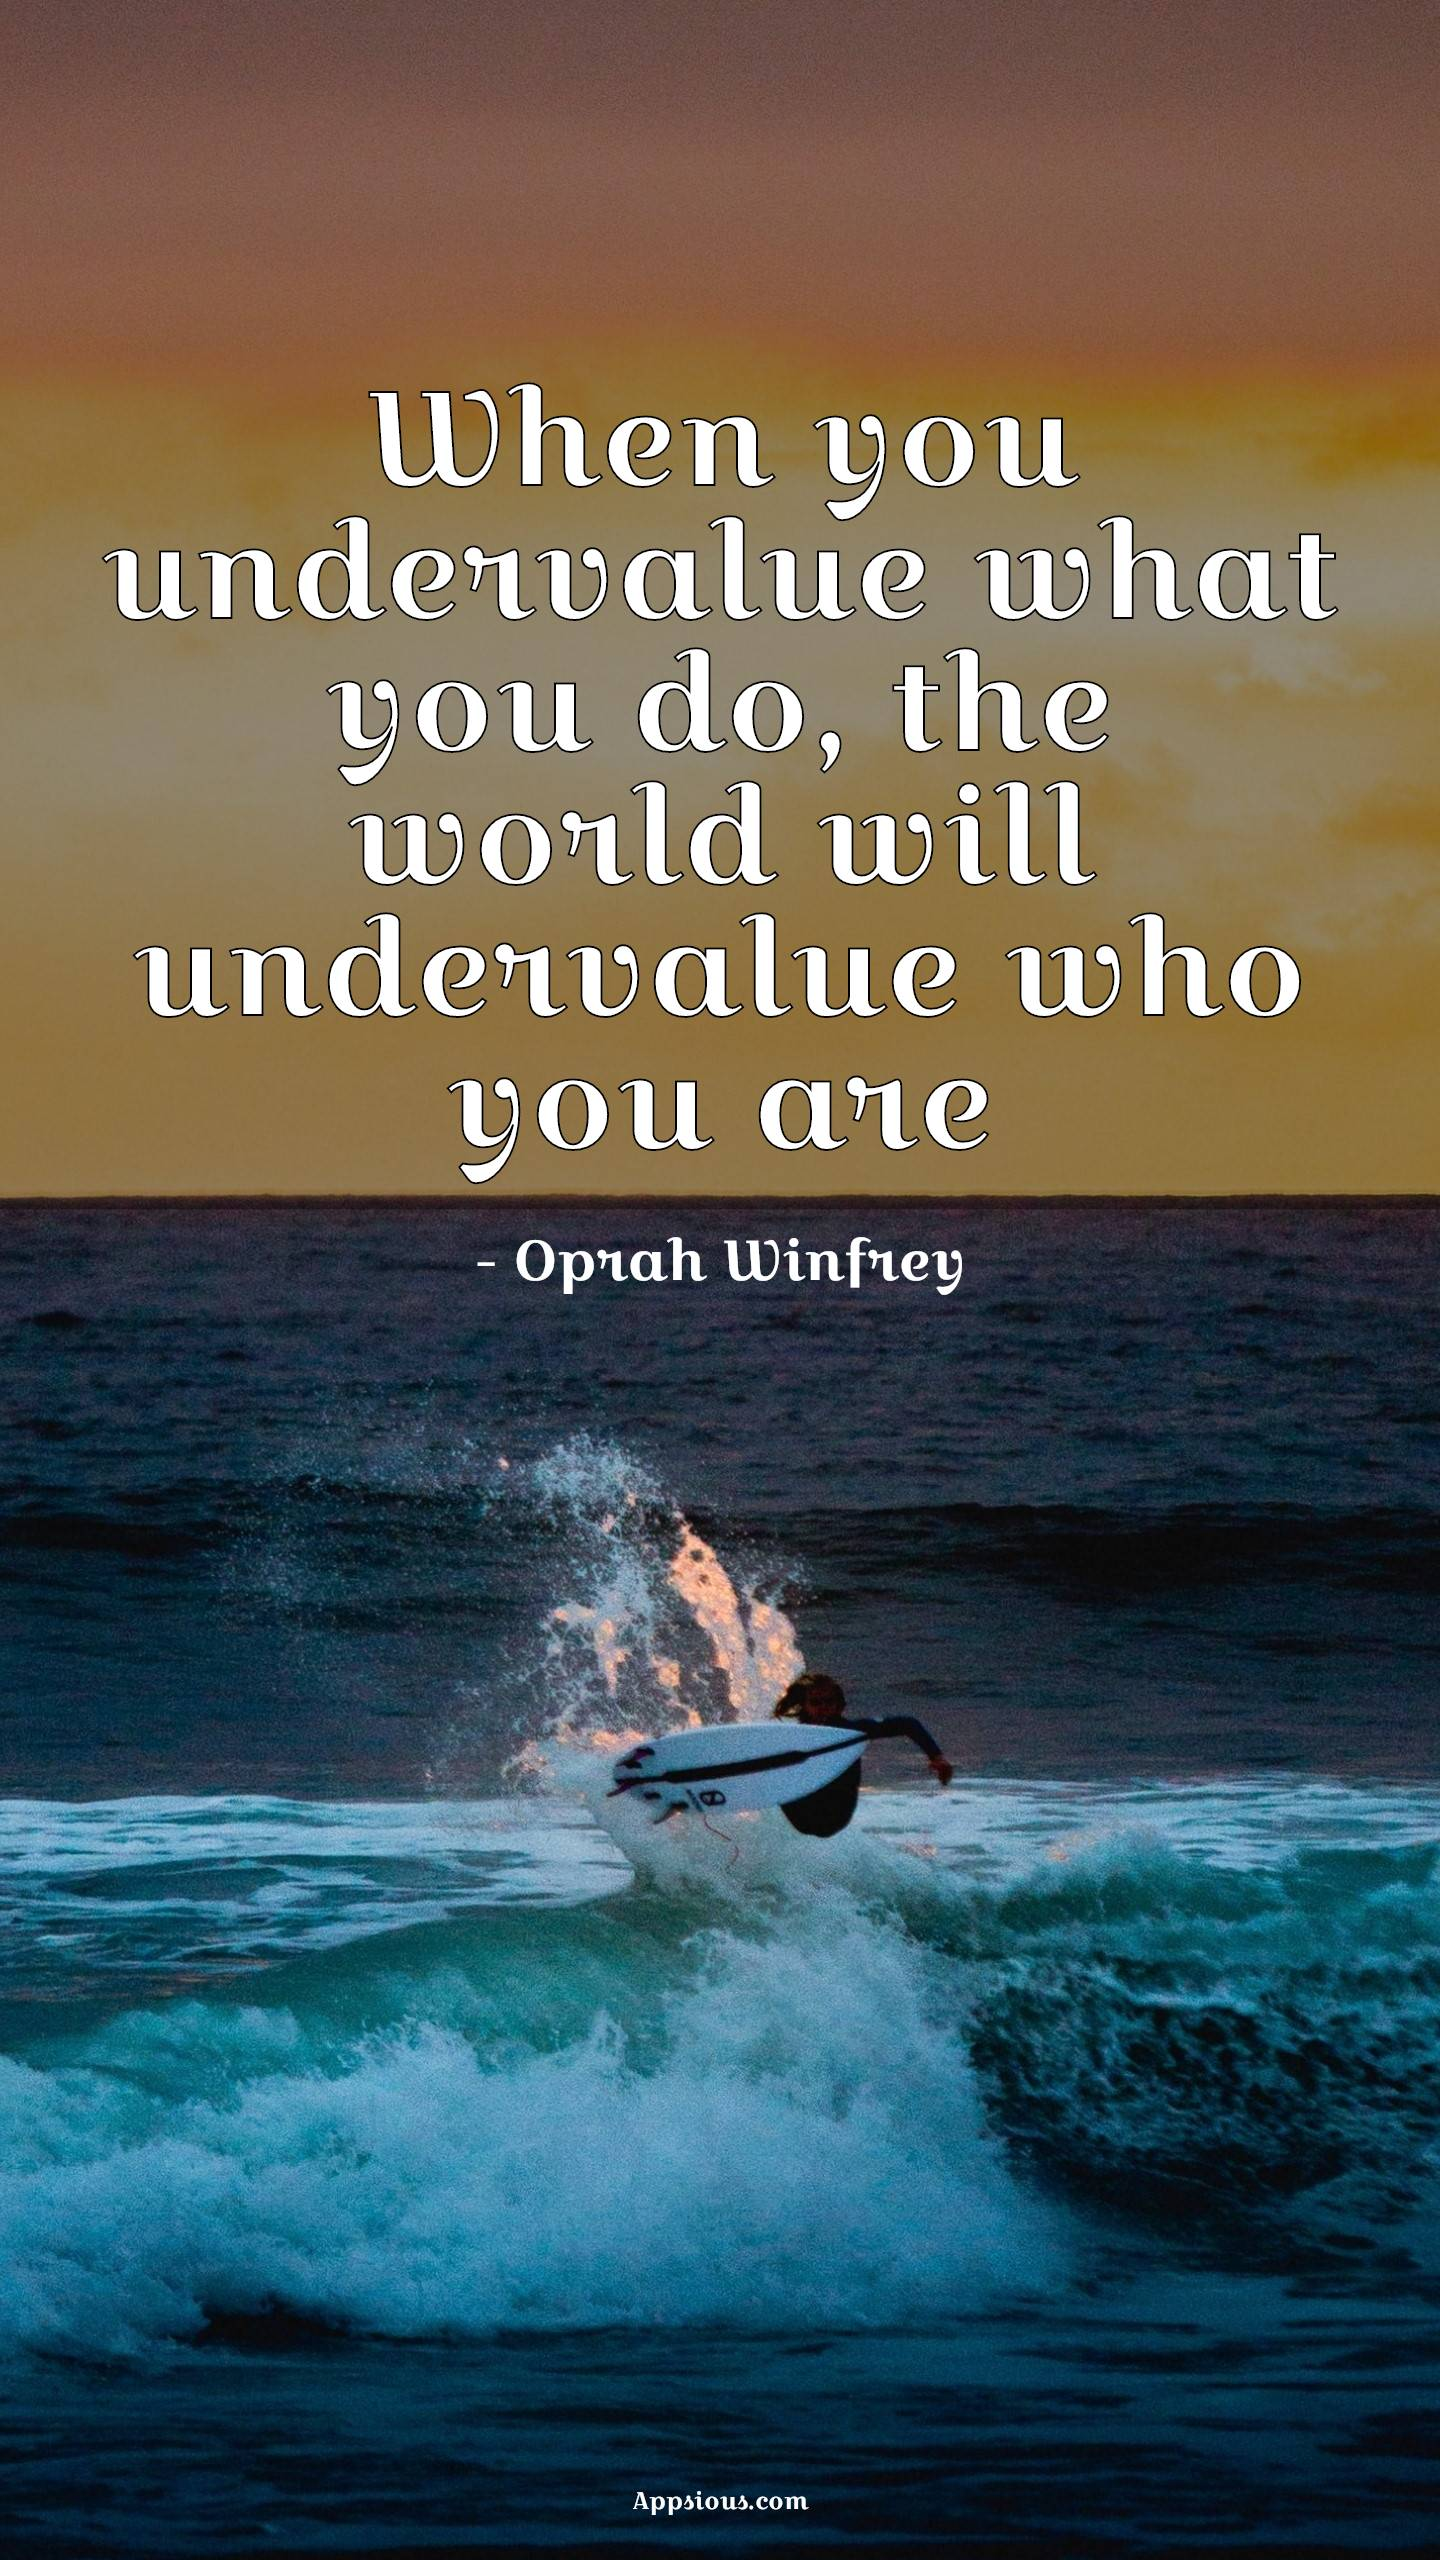 When you undervalue what you do, the world will undervalue who you are